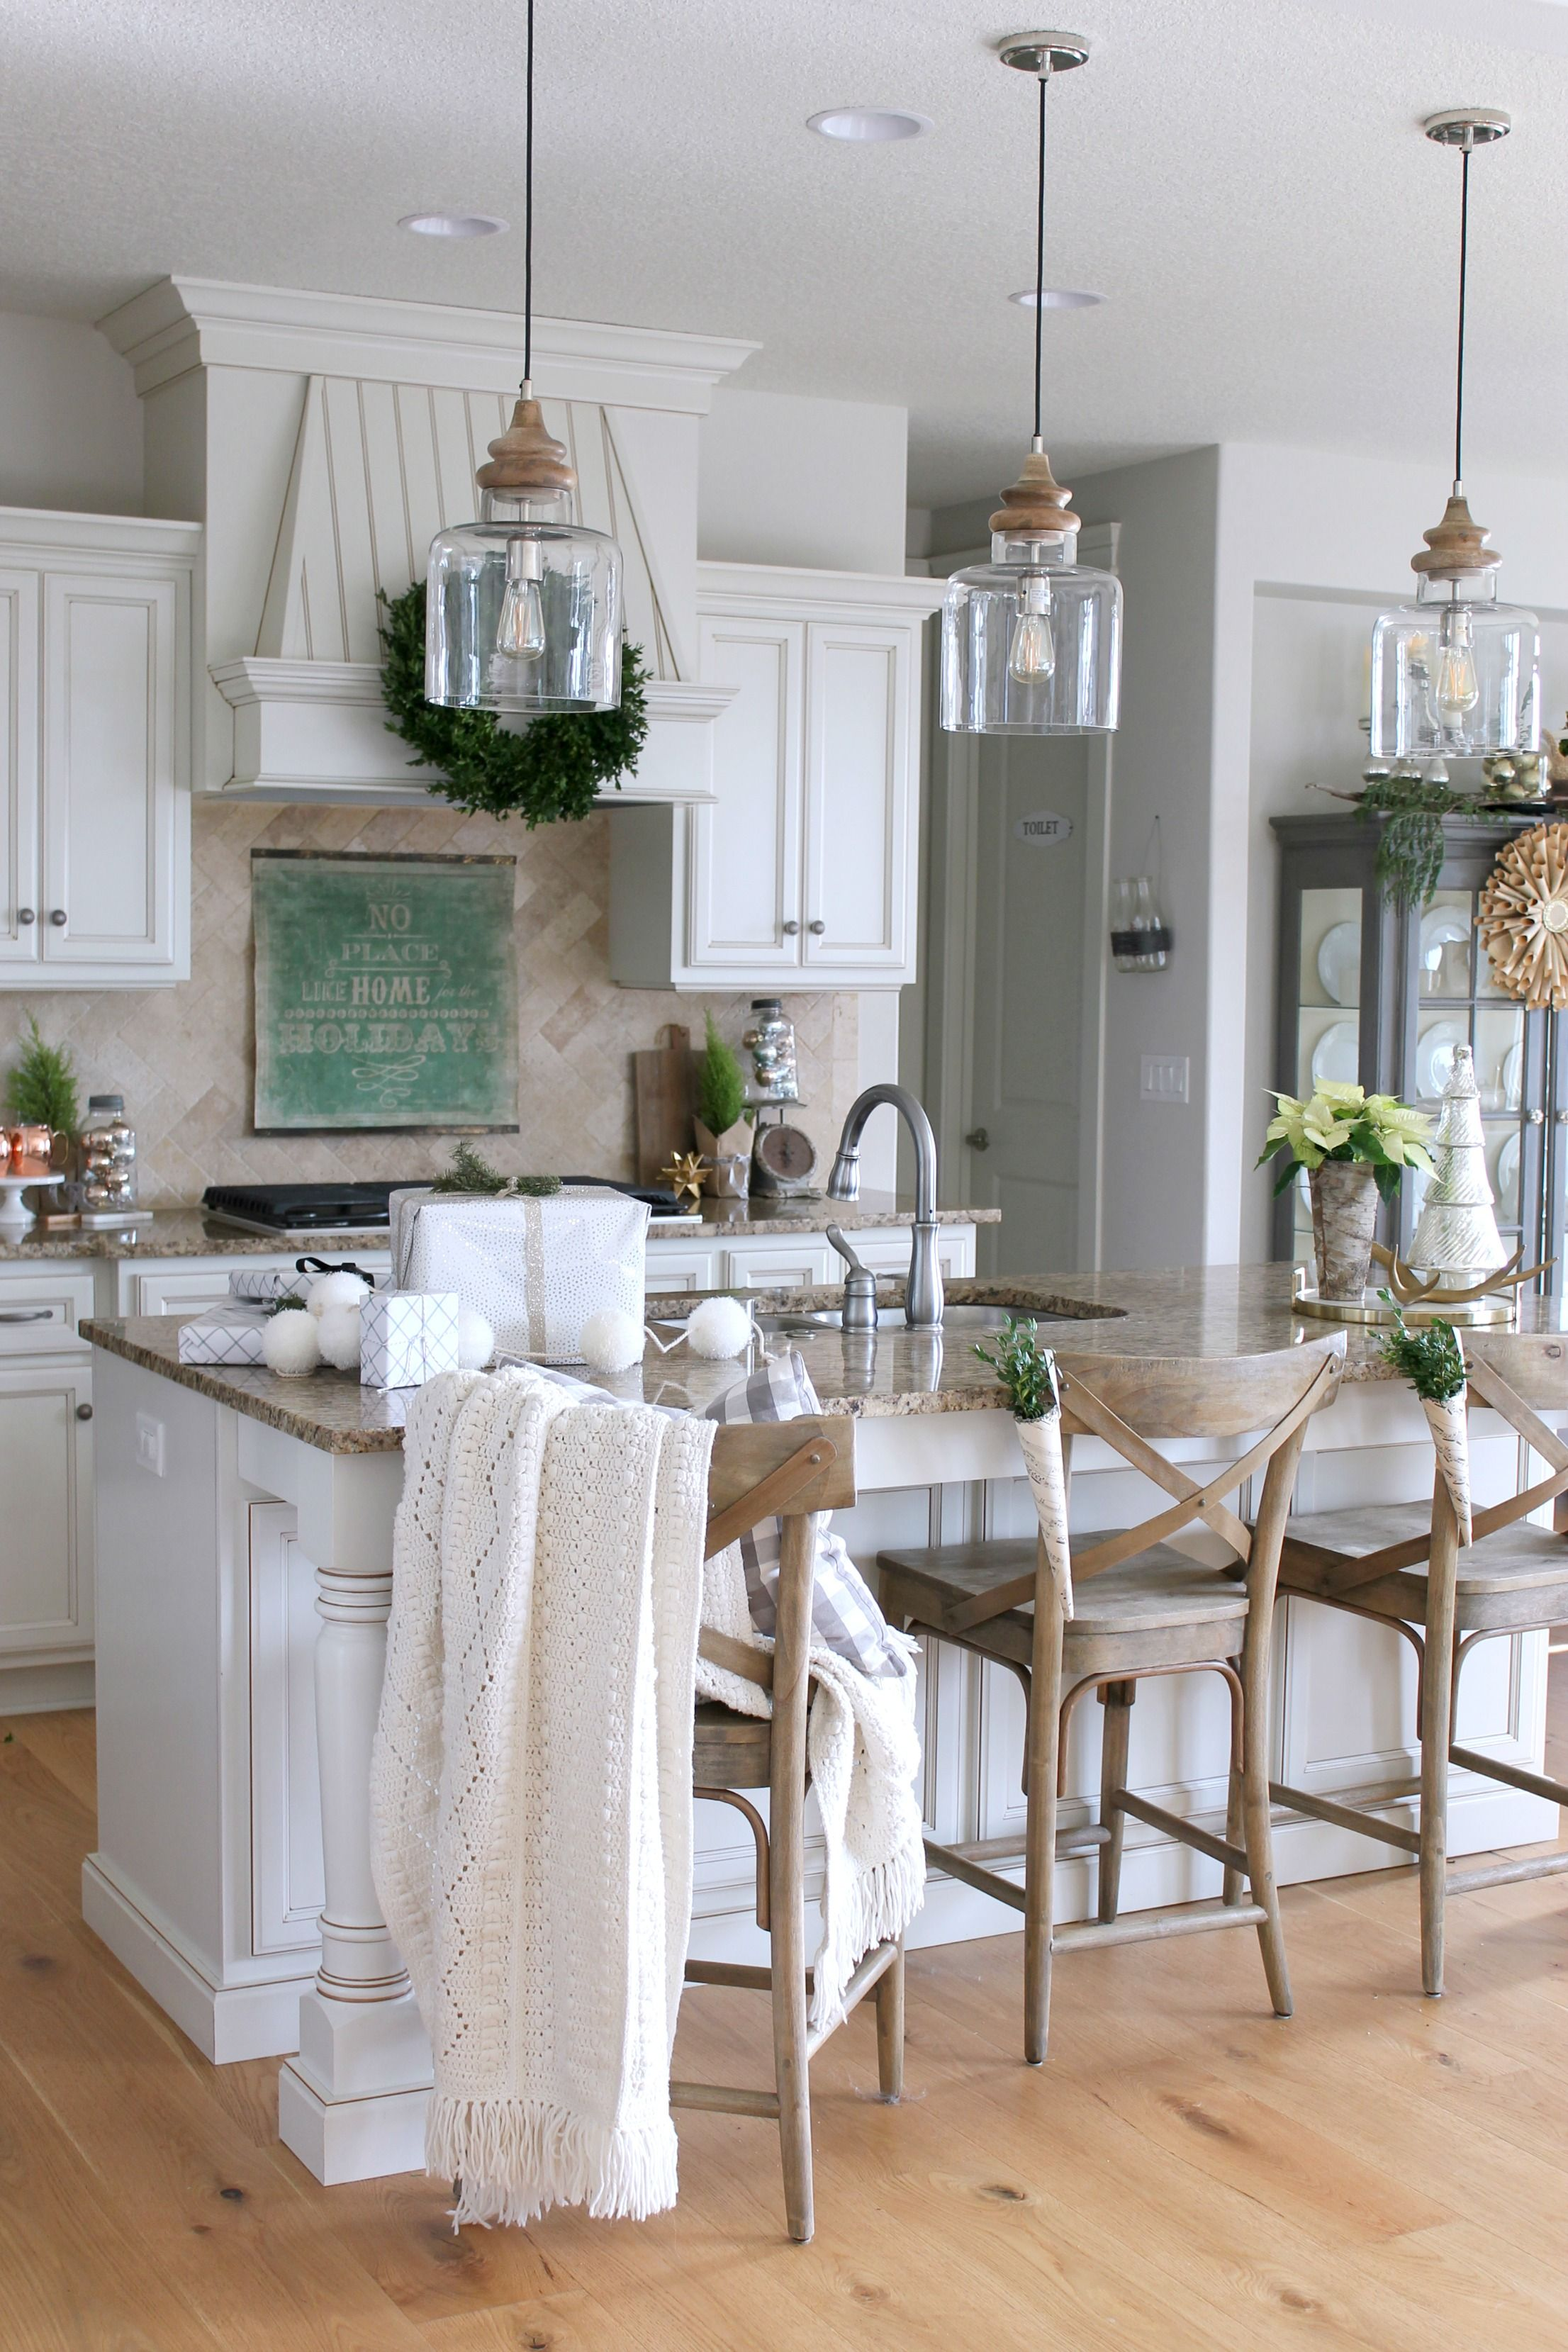 Farmhouse Pendant Light Over Island